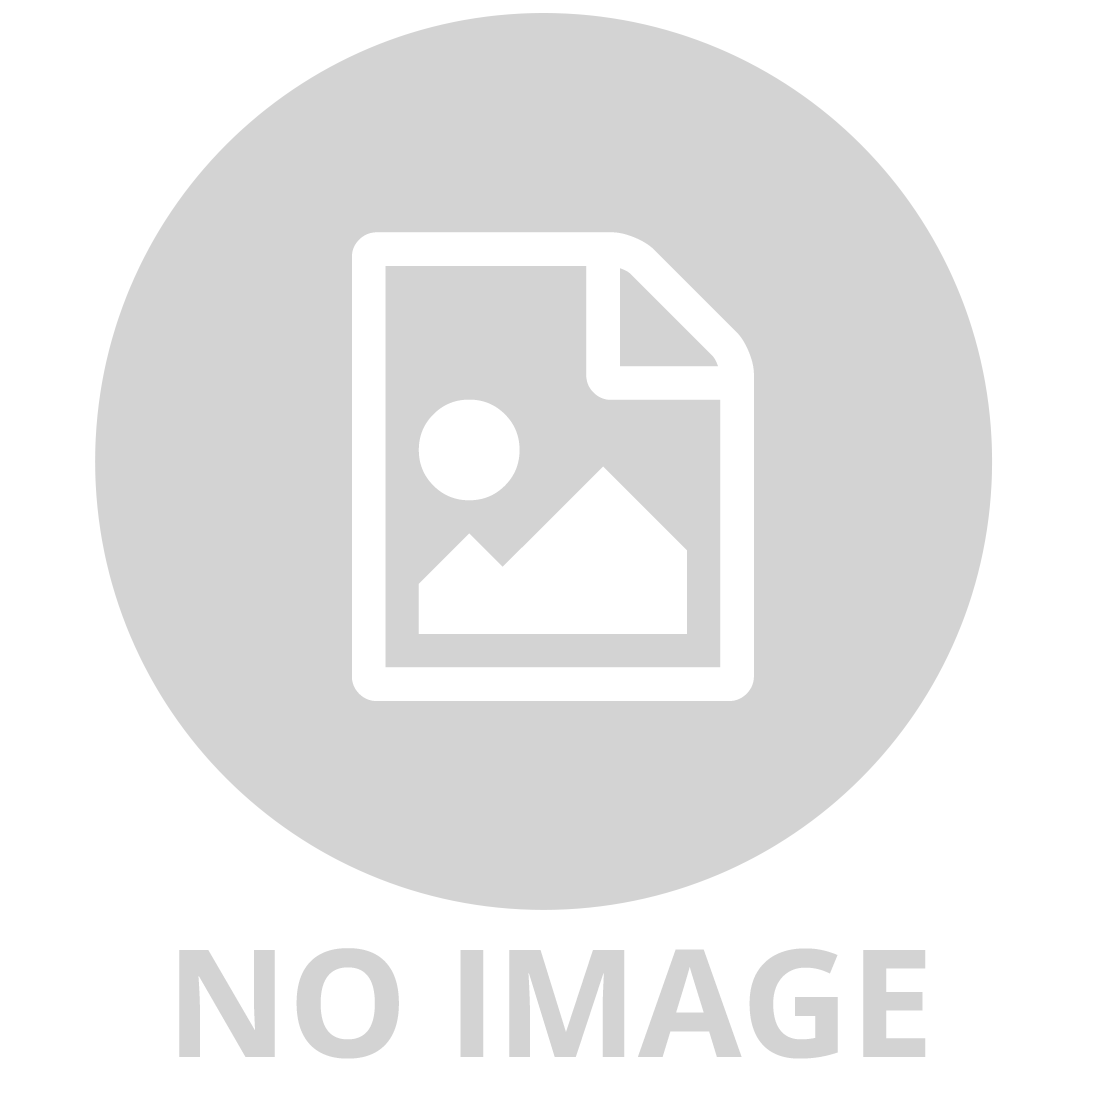 LEGO STAR WARS 75197 - FIRST ORDER SPECIALISTS BATTLE PACK